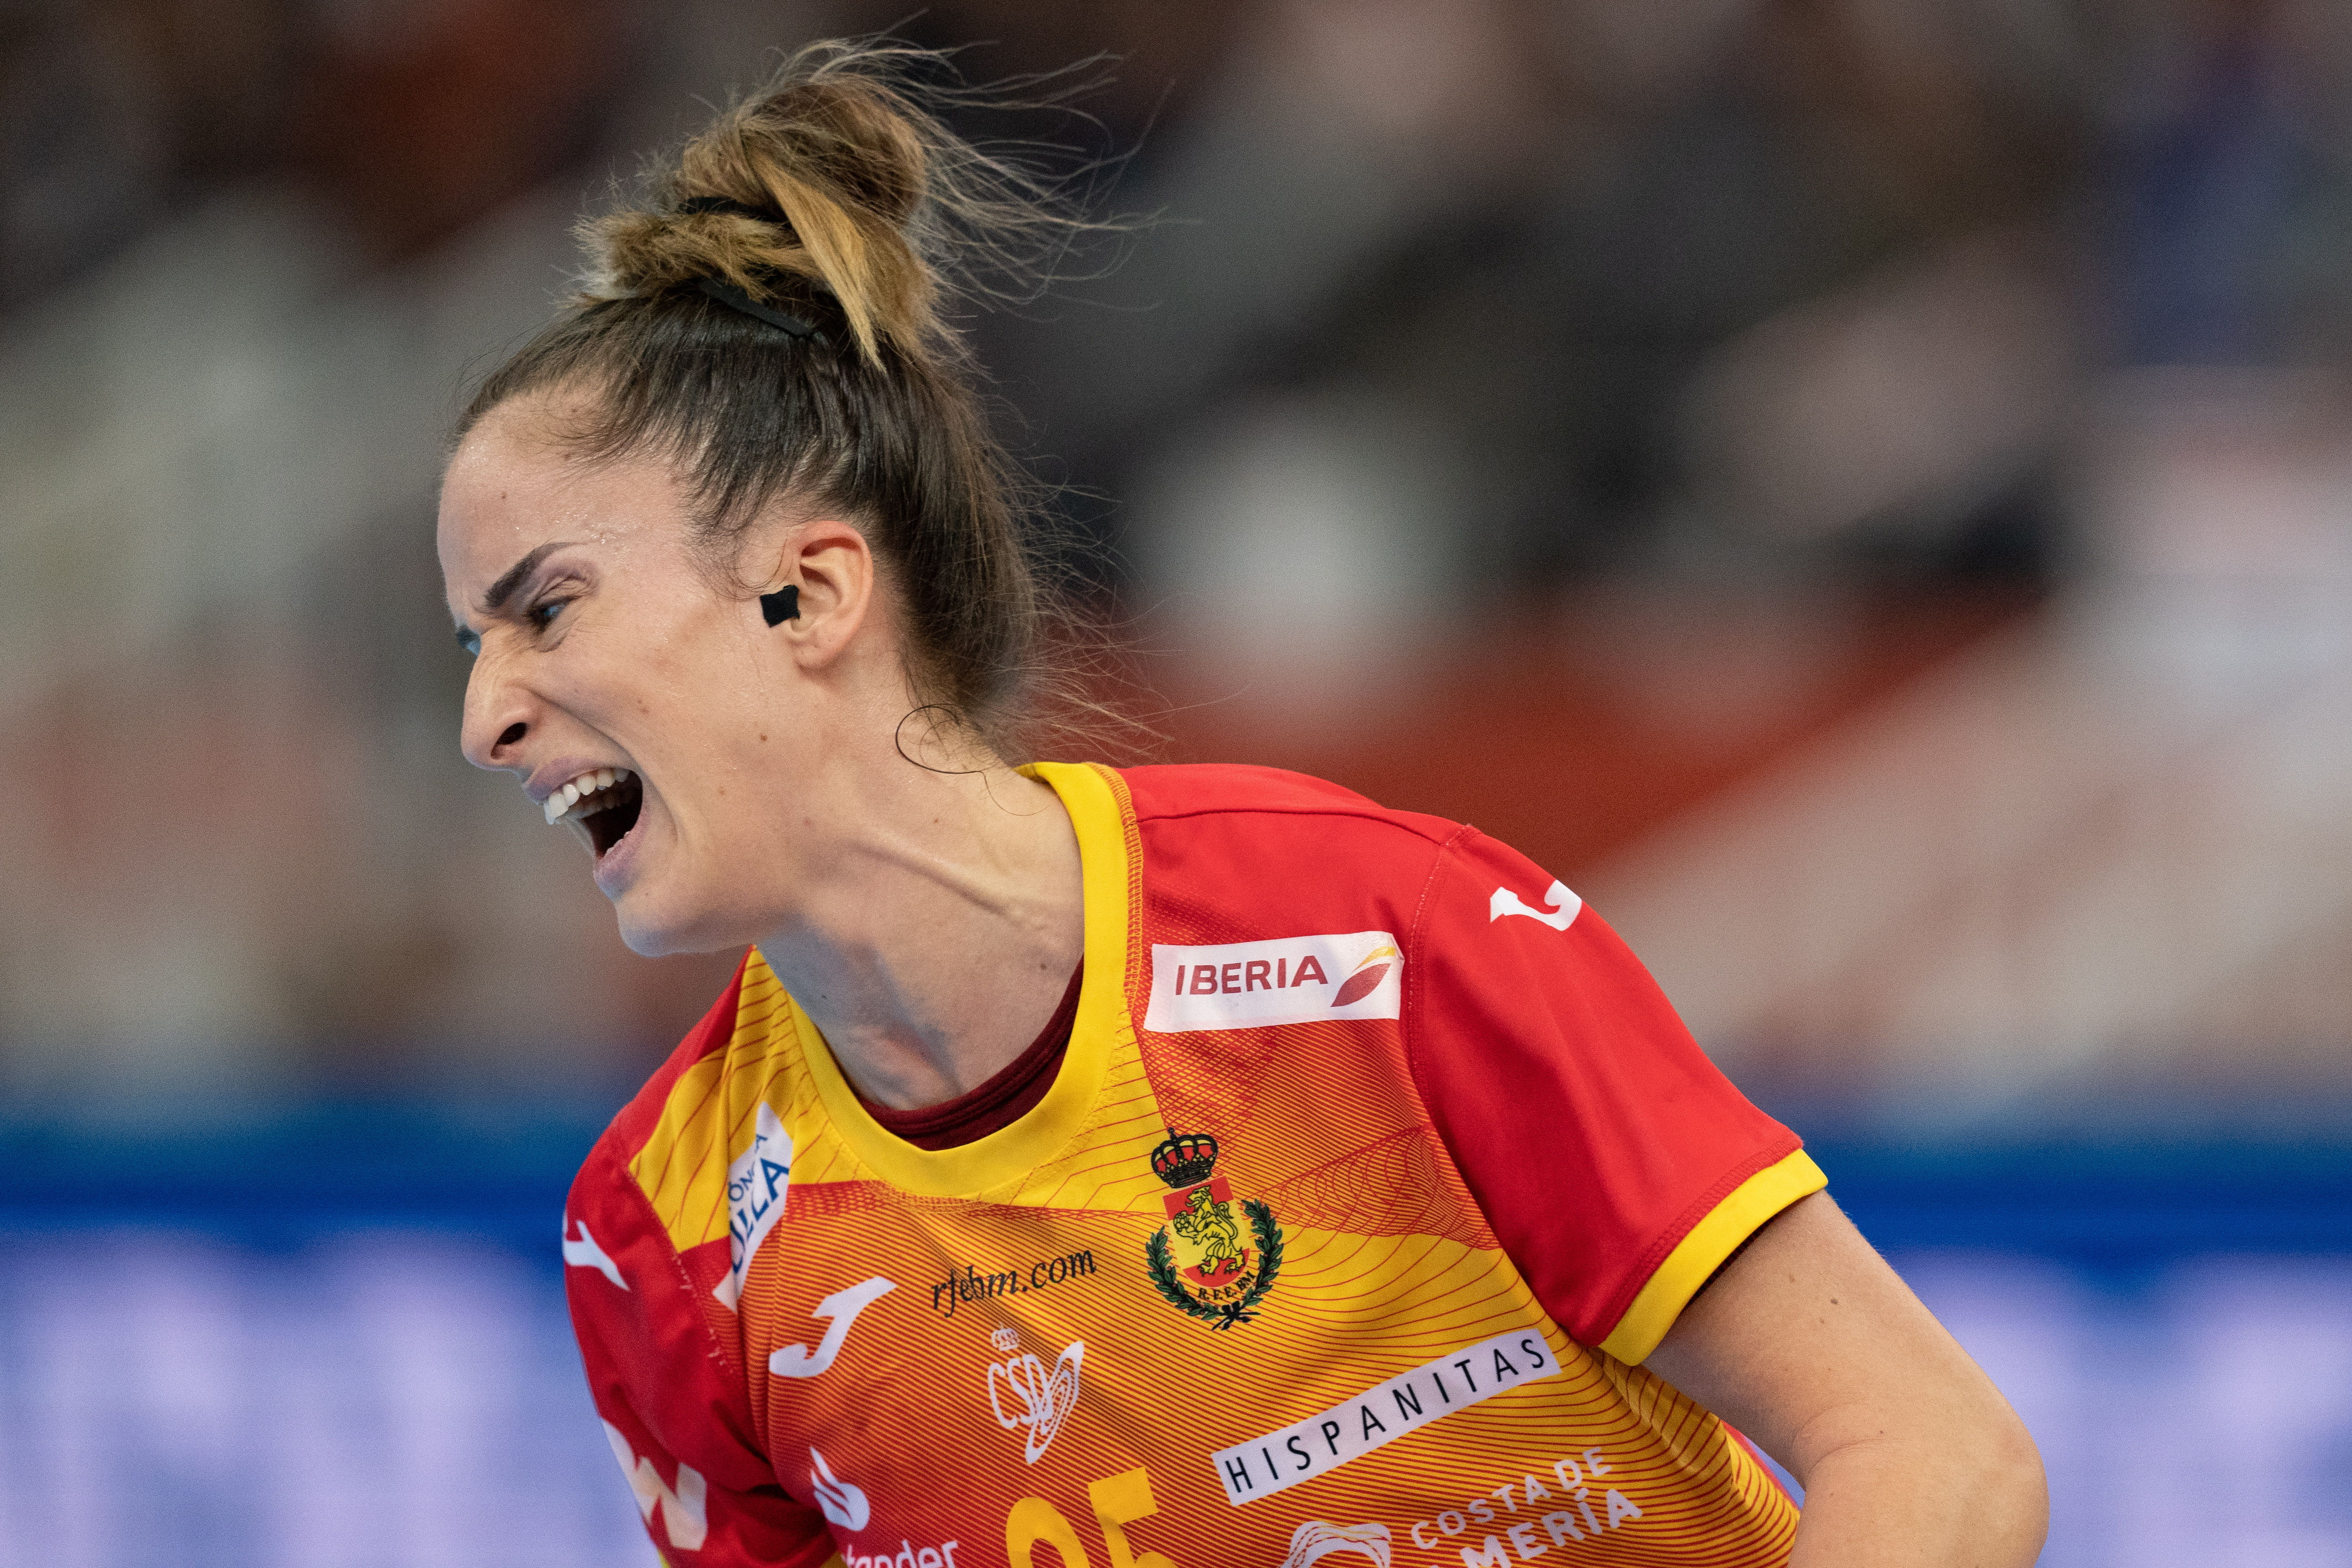 Spain loses with the Netherlands the handball World Cup final with much controversy: was it a robbery?